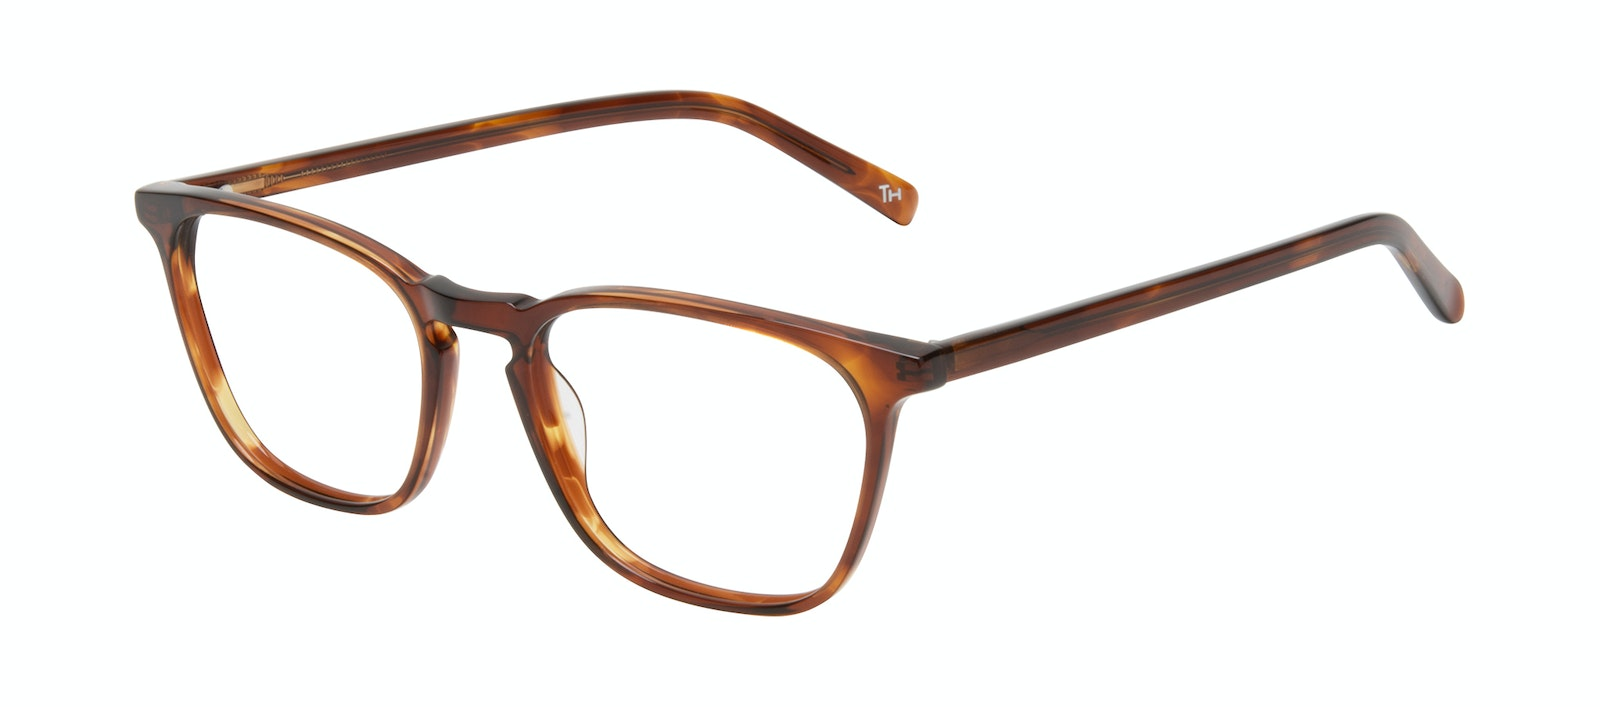 Affordable Fashion Glasses Square Eyeglasses Men Louise Cedar Tilt